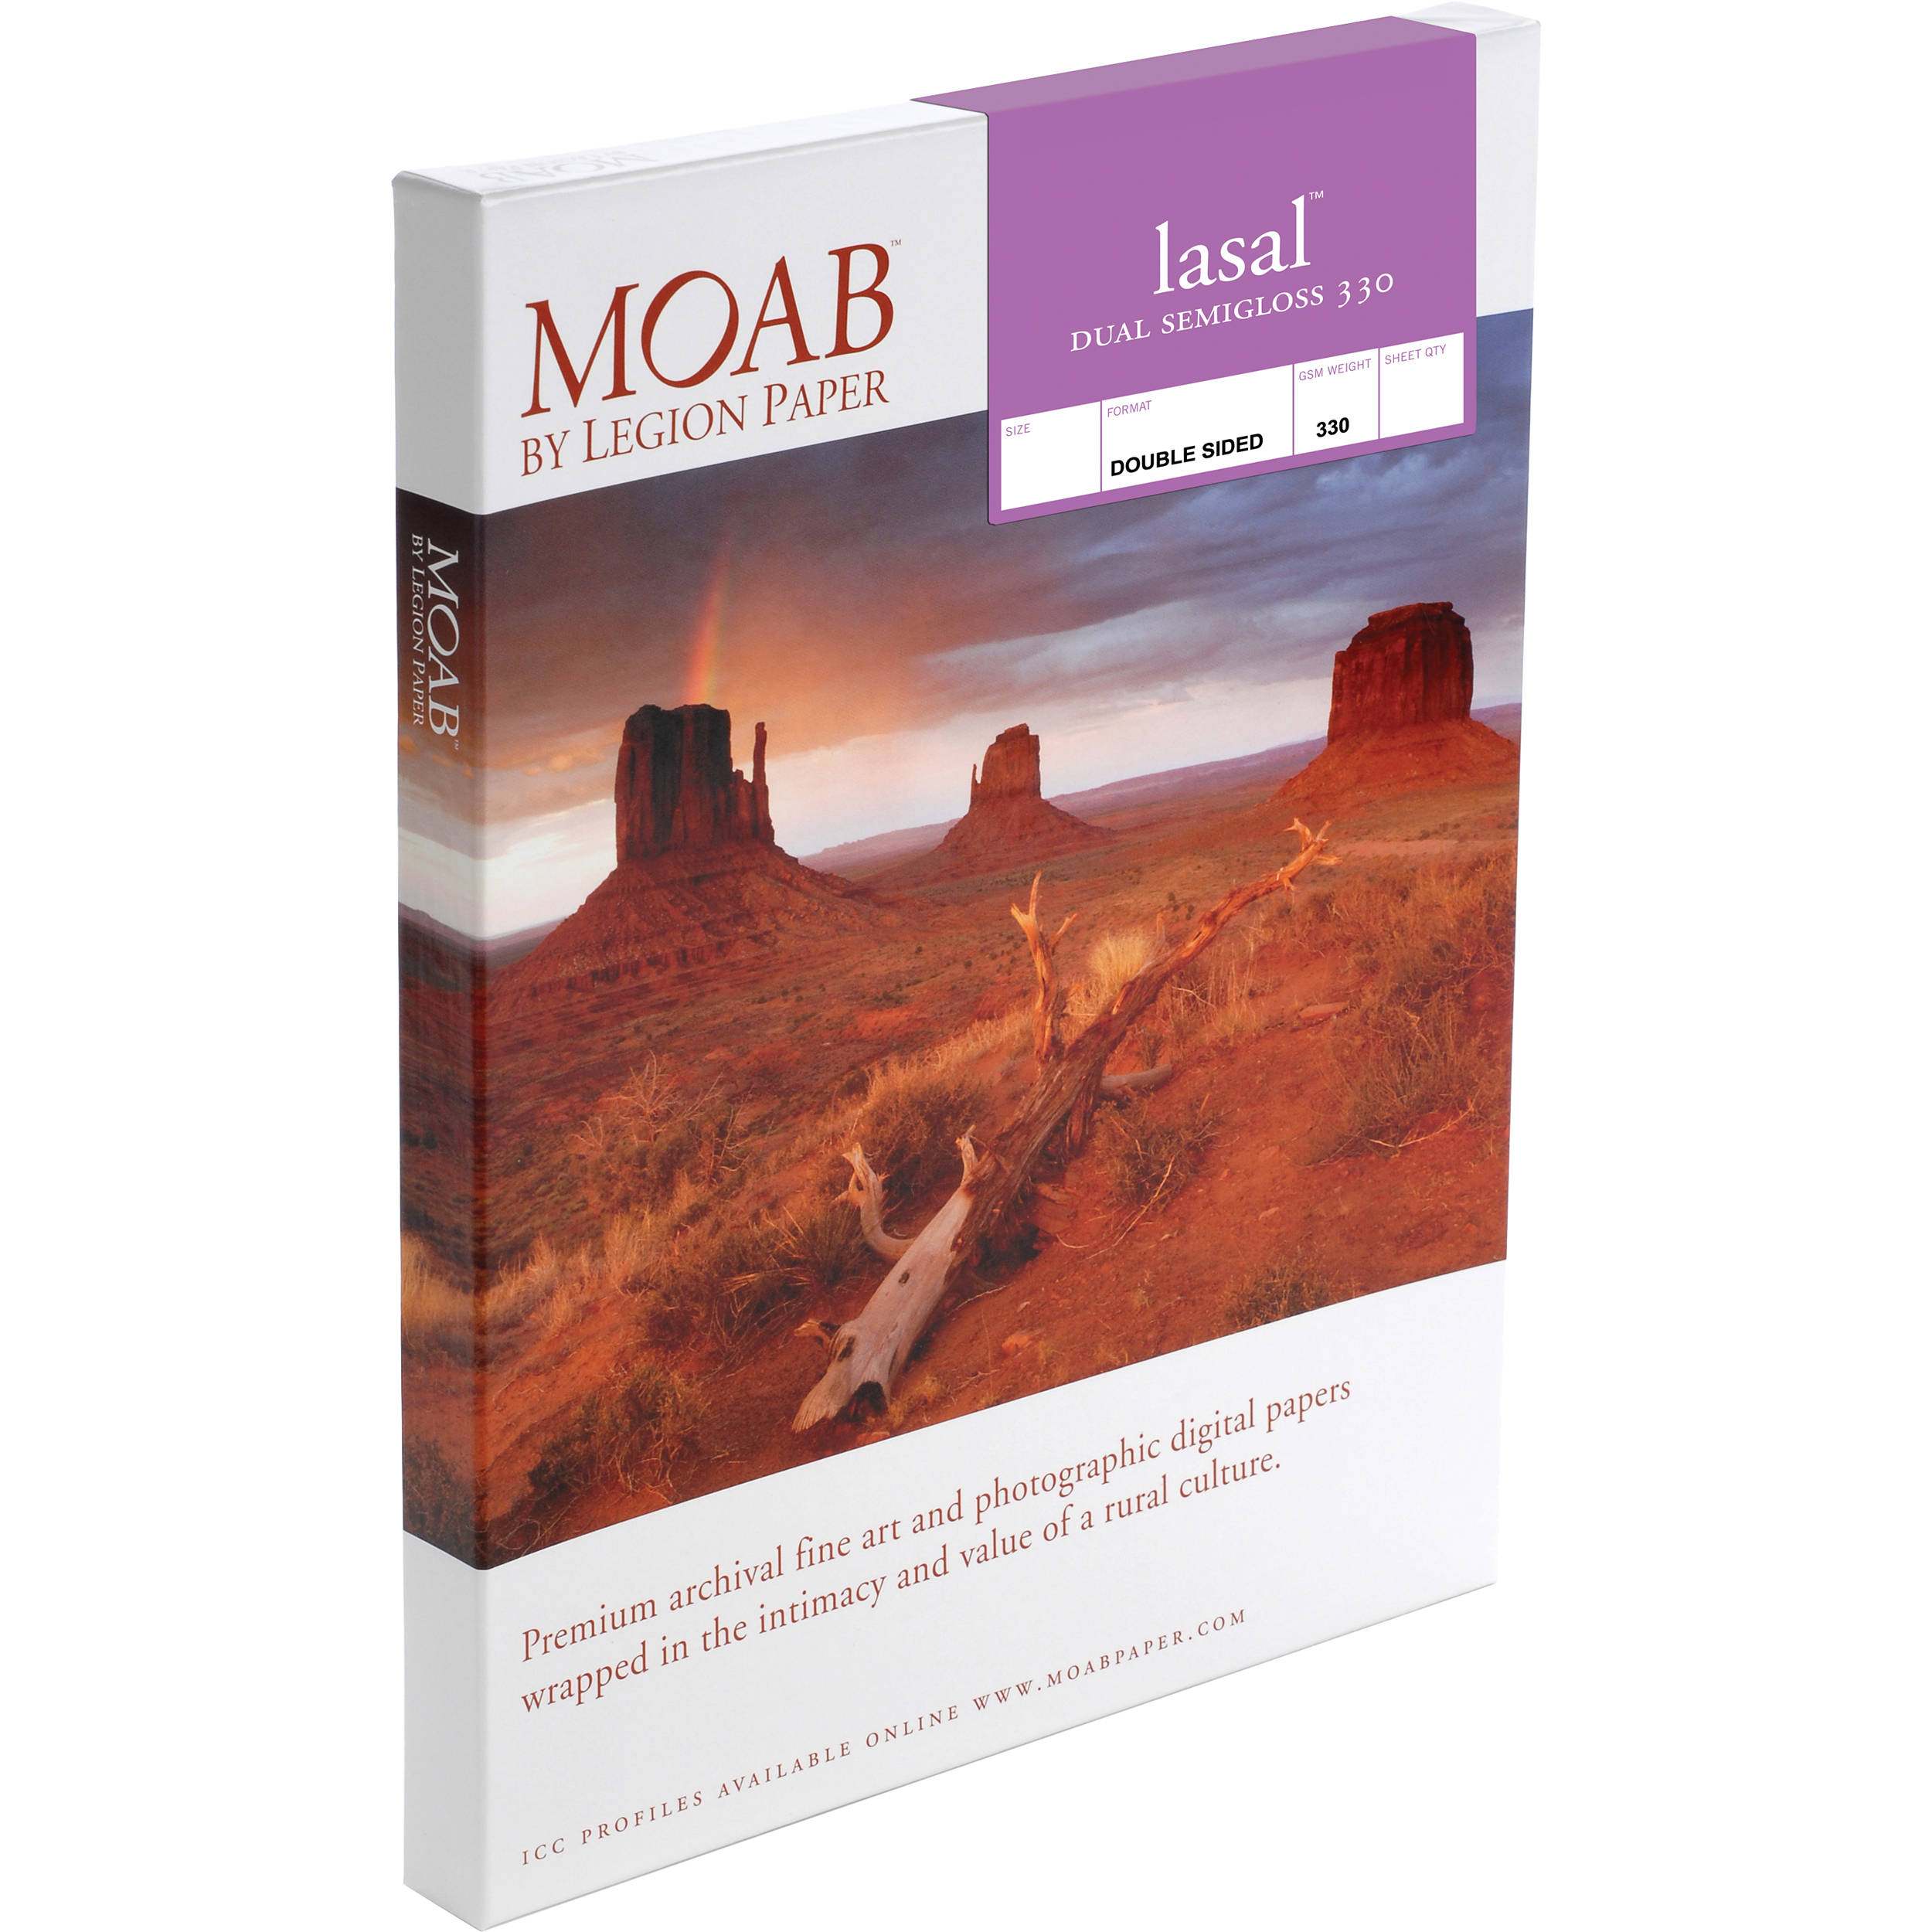 Moab Lasal Dual Semigloss 330 Paper F01 Lsd330851125 Bh Photo